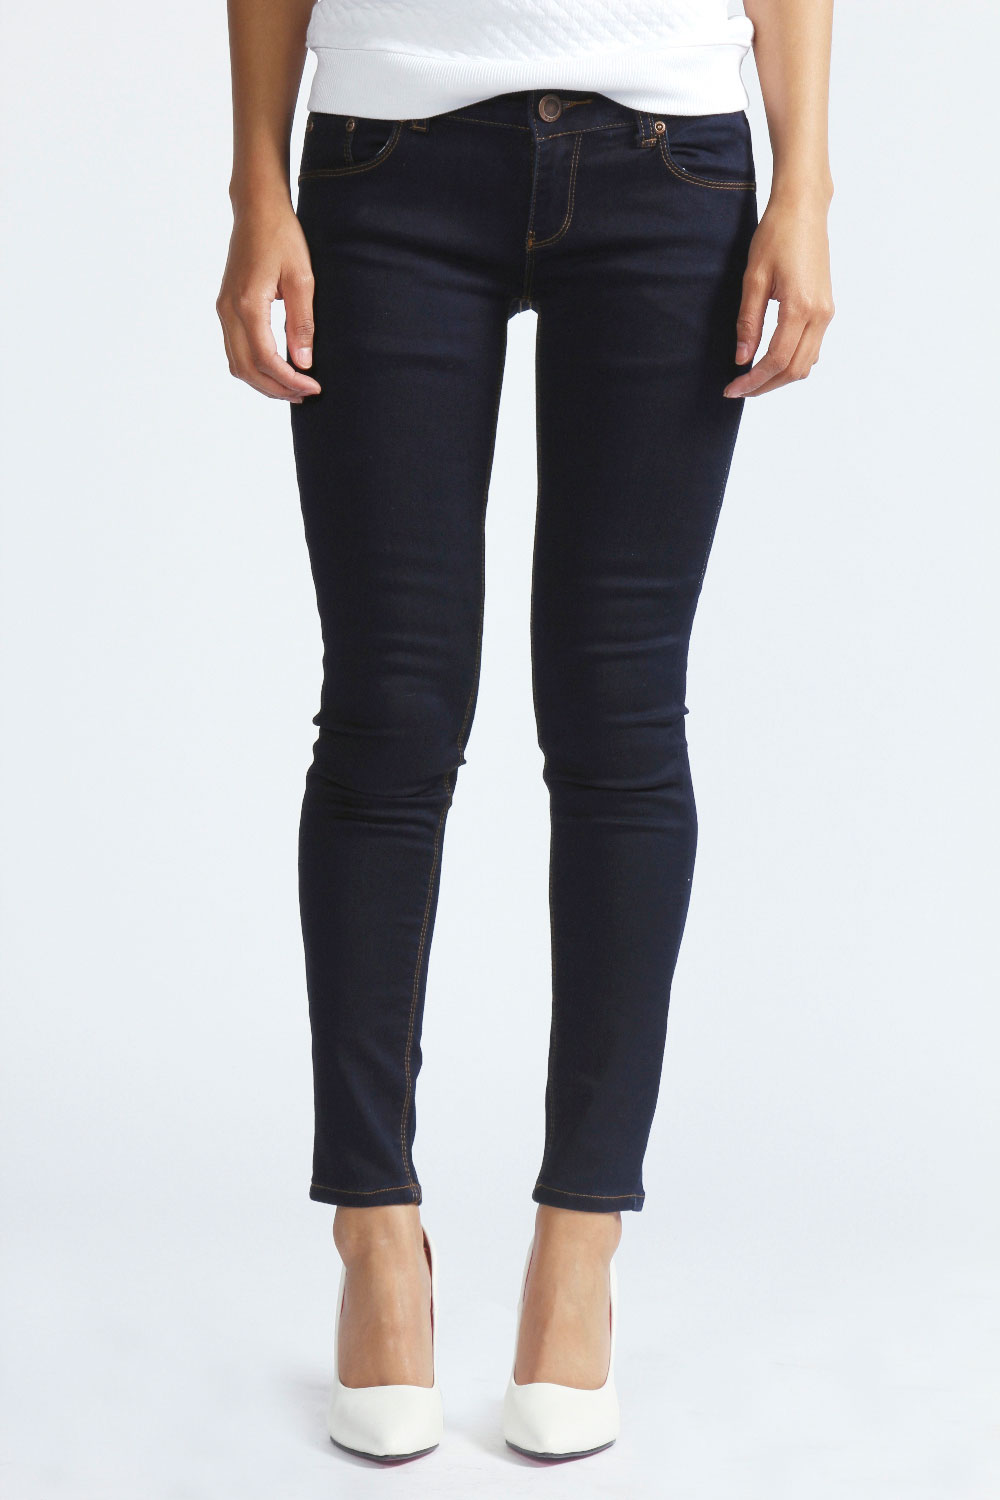 boohoo faith 7 8 skinny fit ankle grazer jeans in indigo. Black Bedroom Furniture Sets. Home Design Ideas